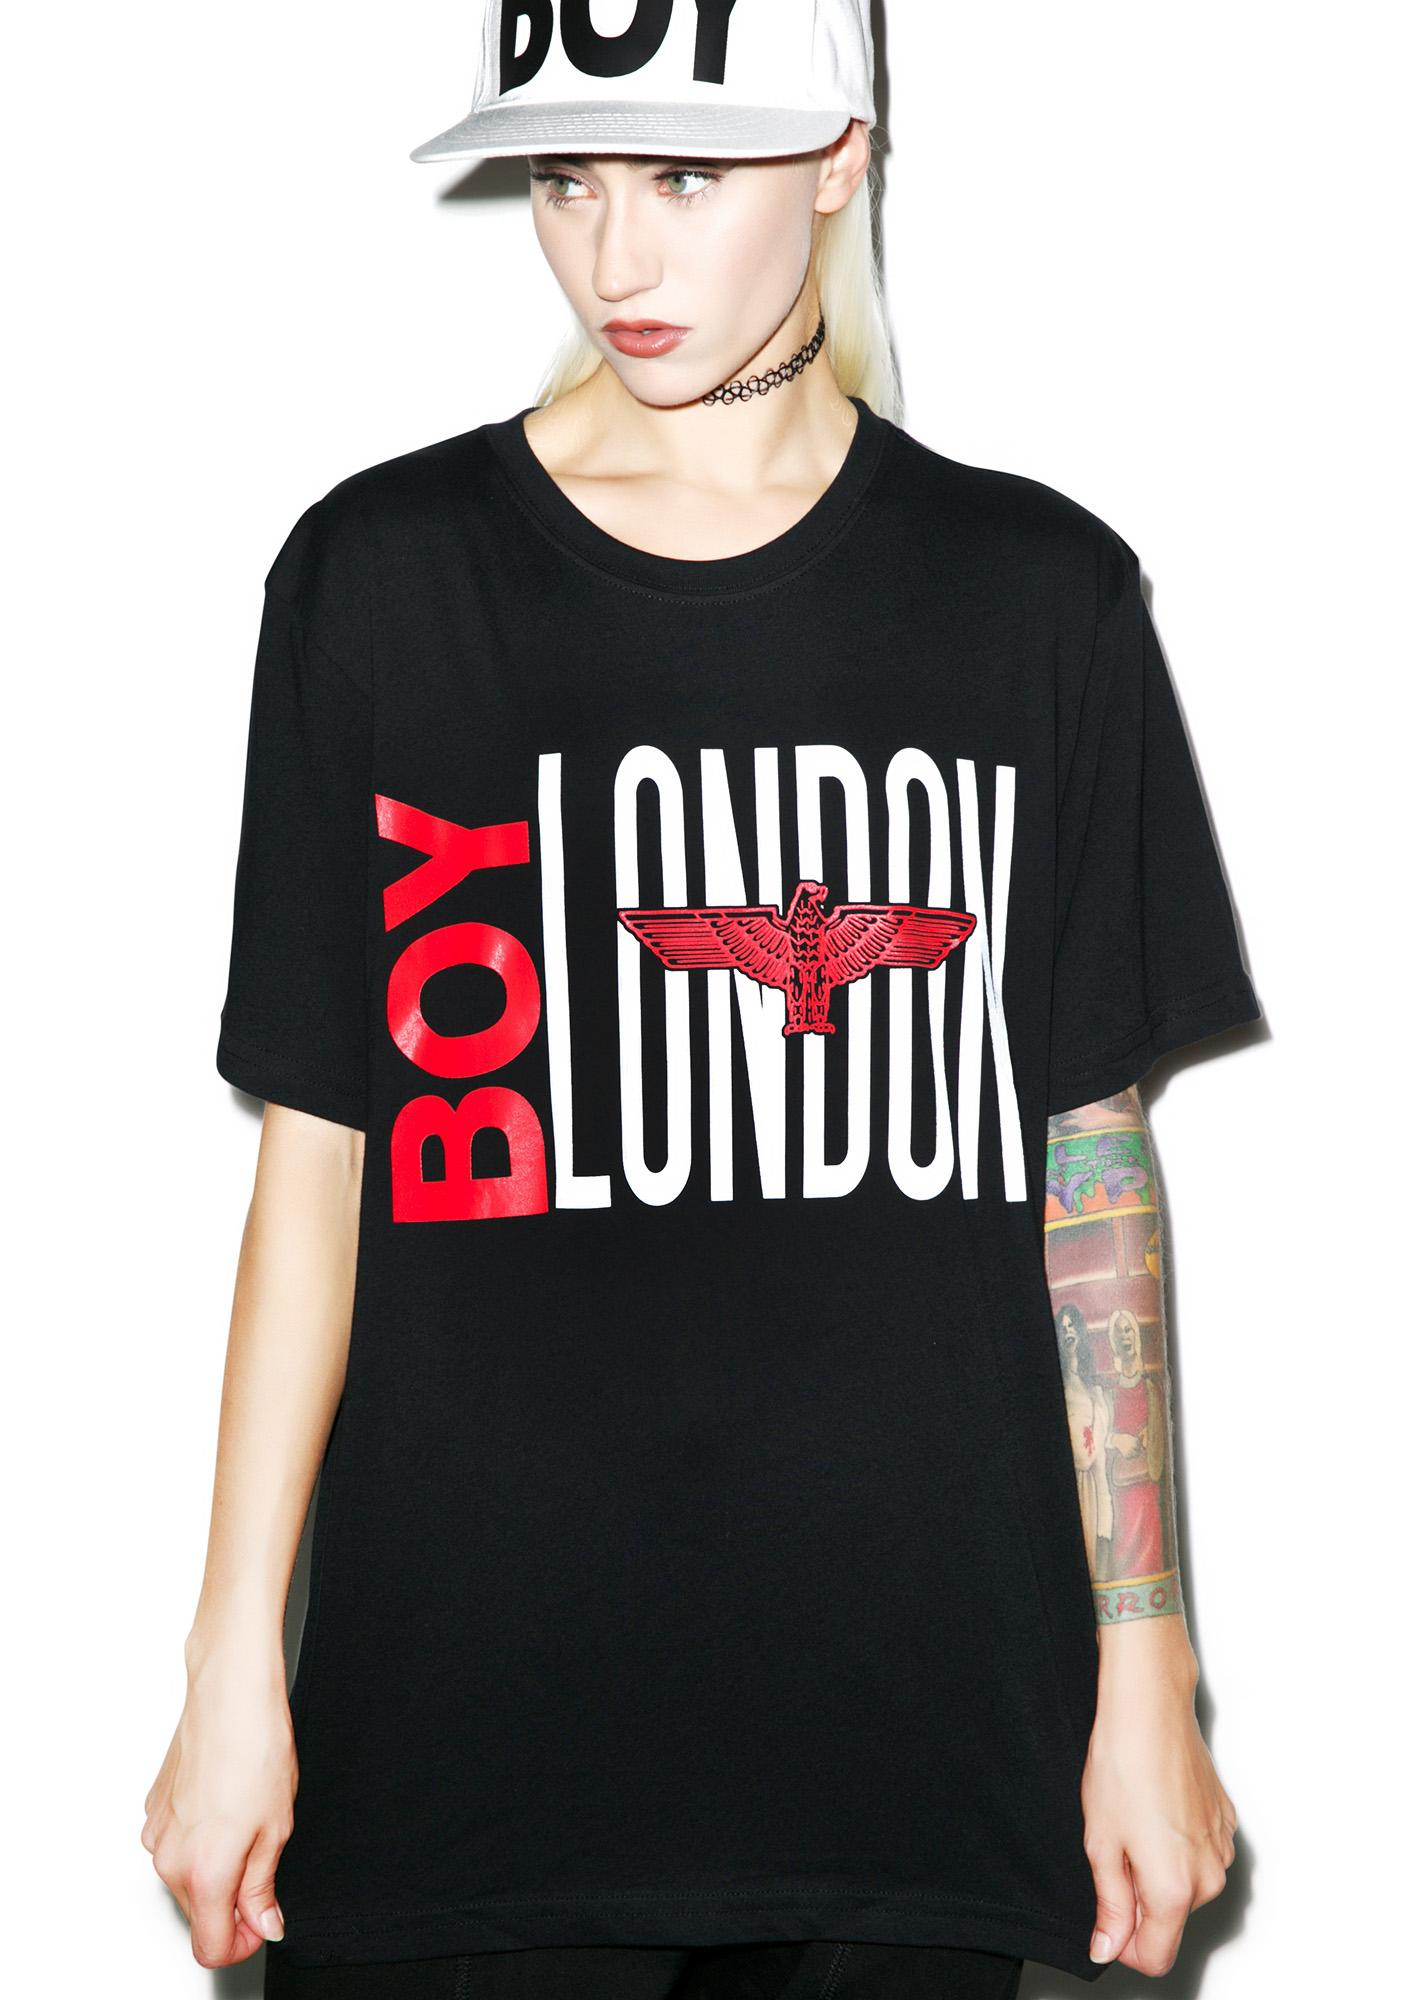 BOY London Red Eagle Tee